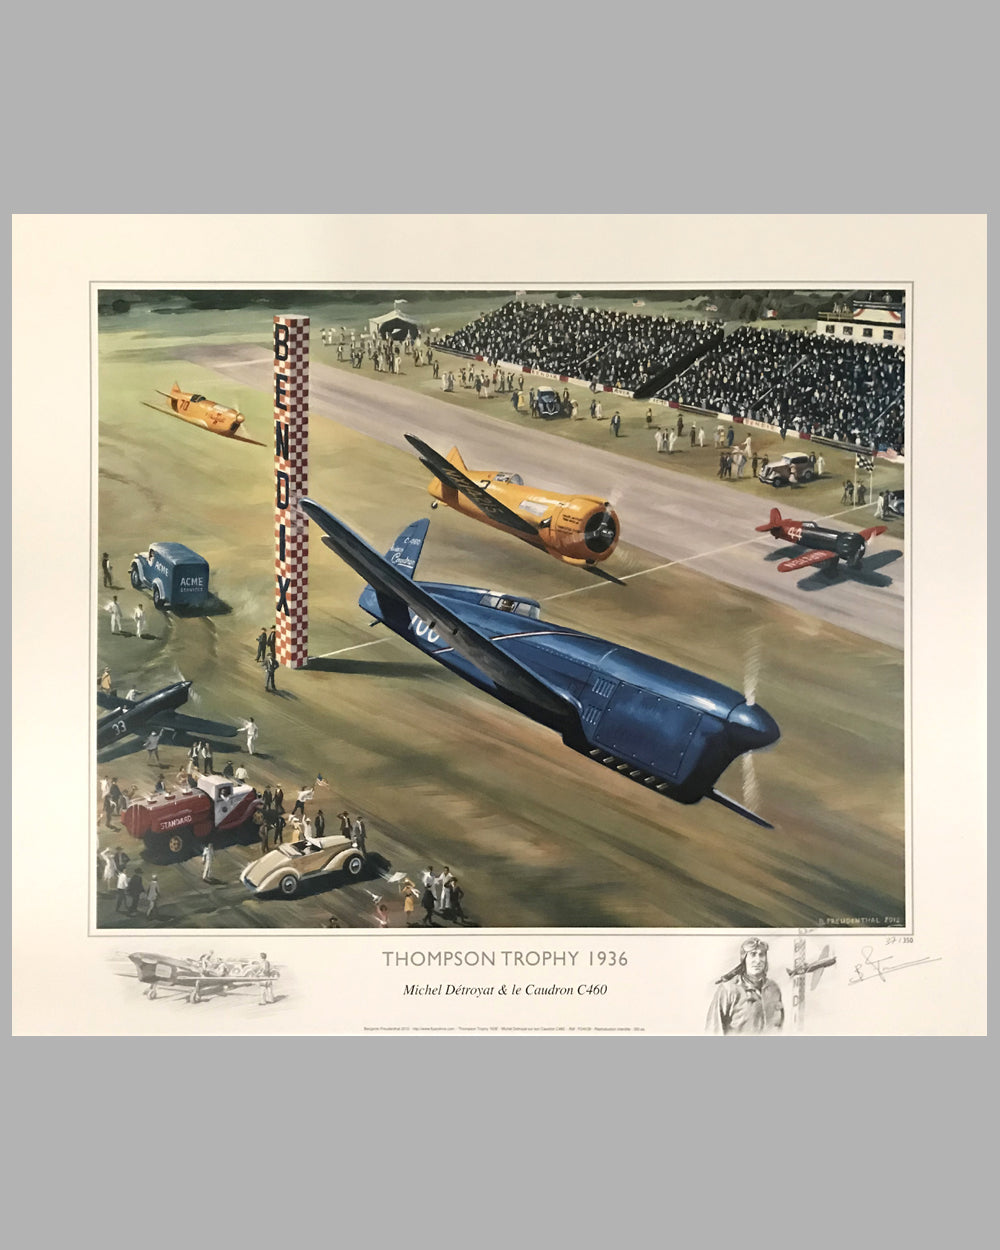 Thompson Trophy 1936 print (France), 2012, signed